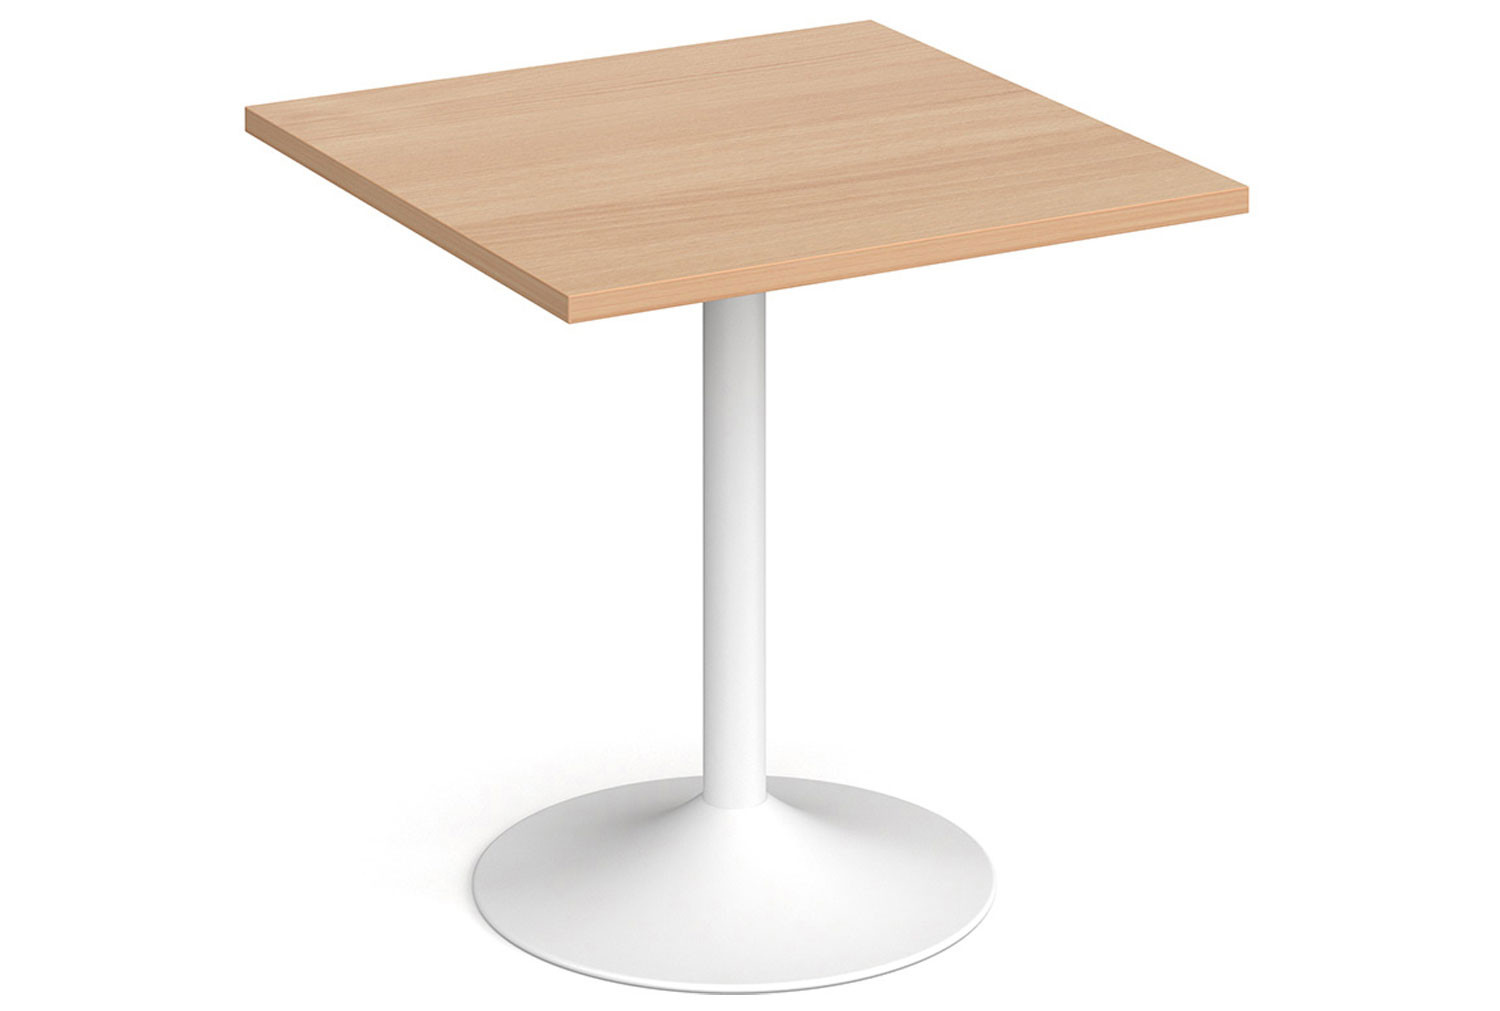 Soutar Square Dining Table